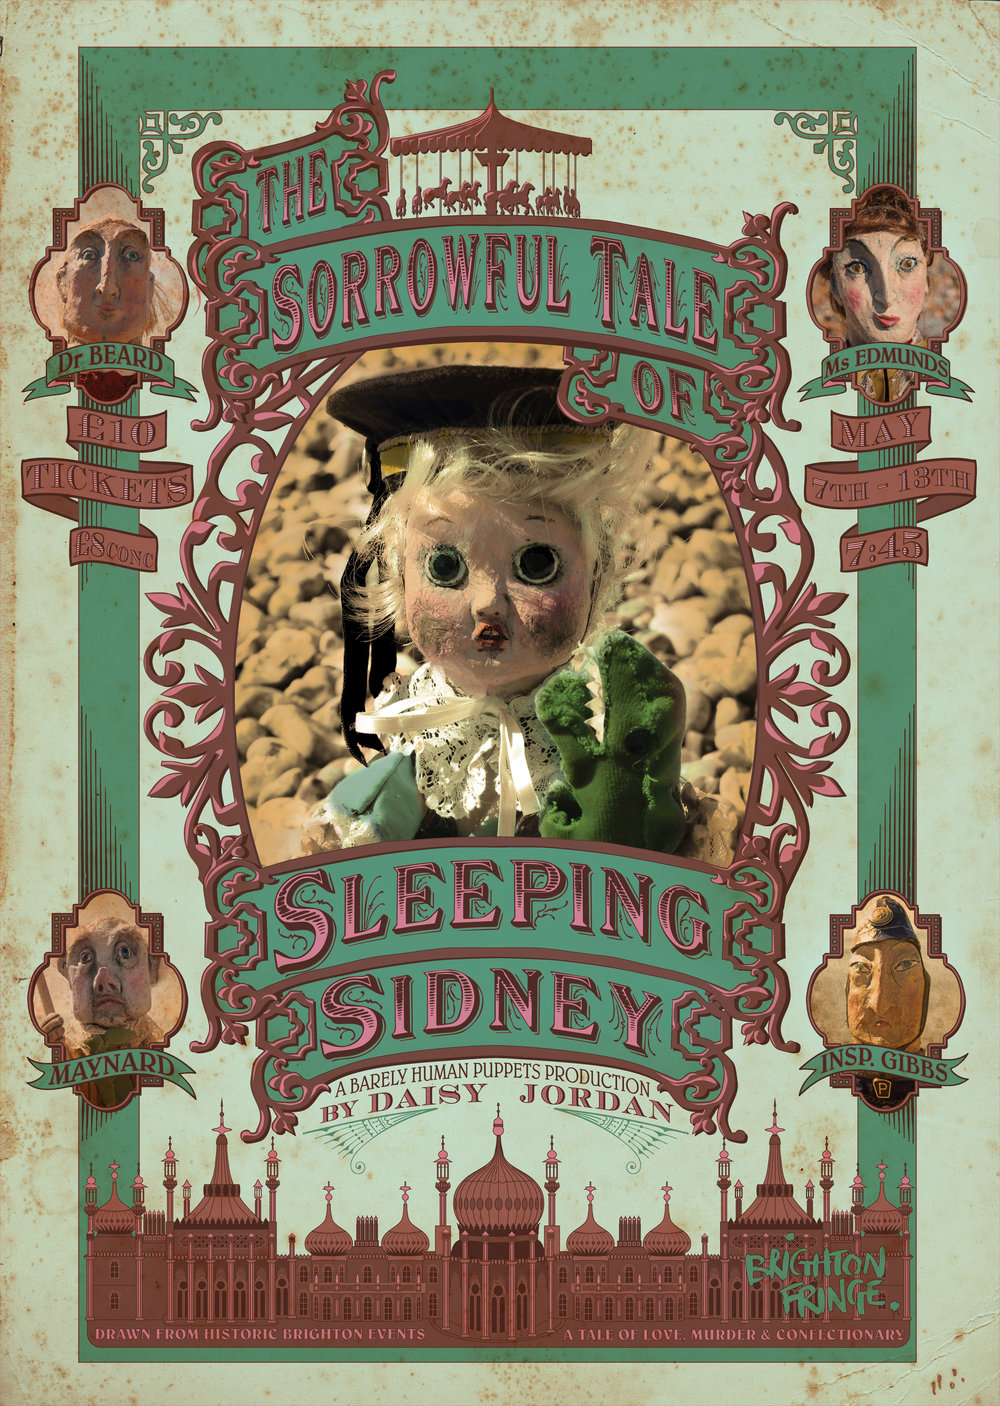 Poster for puppet show about the Brighton Chocolate Cream Poisoner of 1800s. Confectionery and Murder!